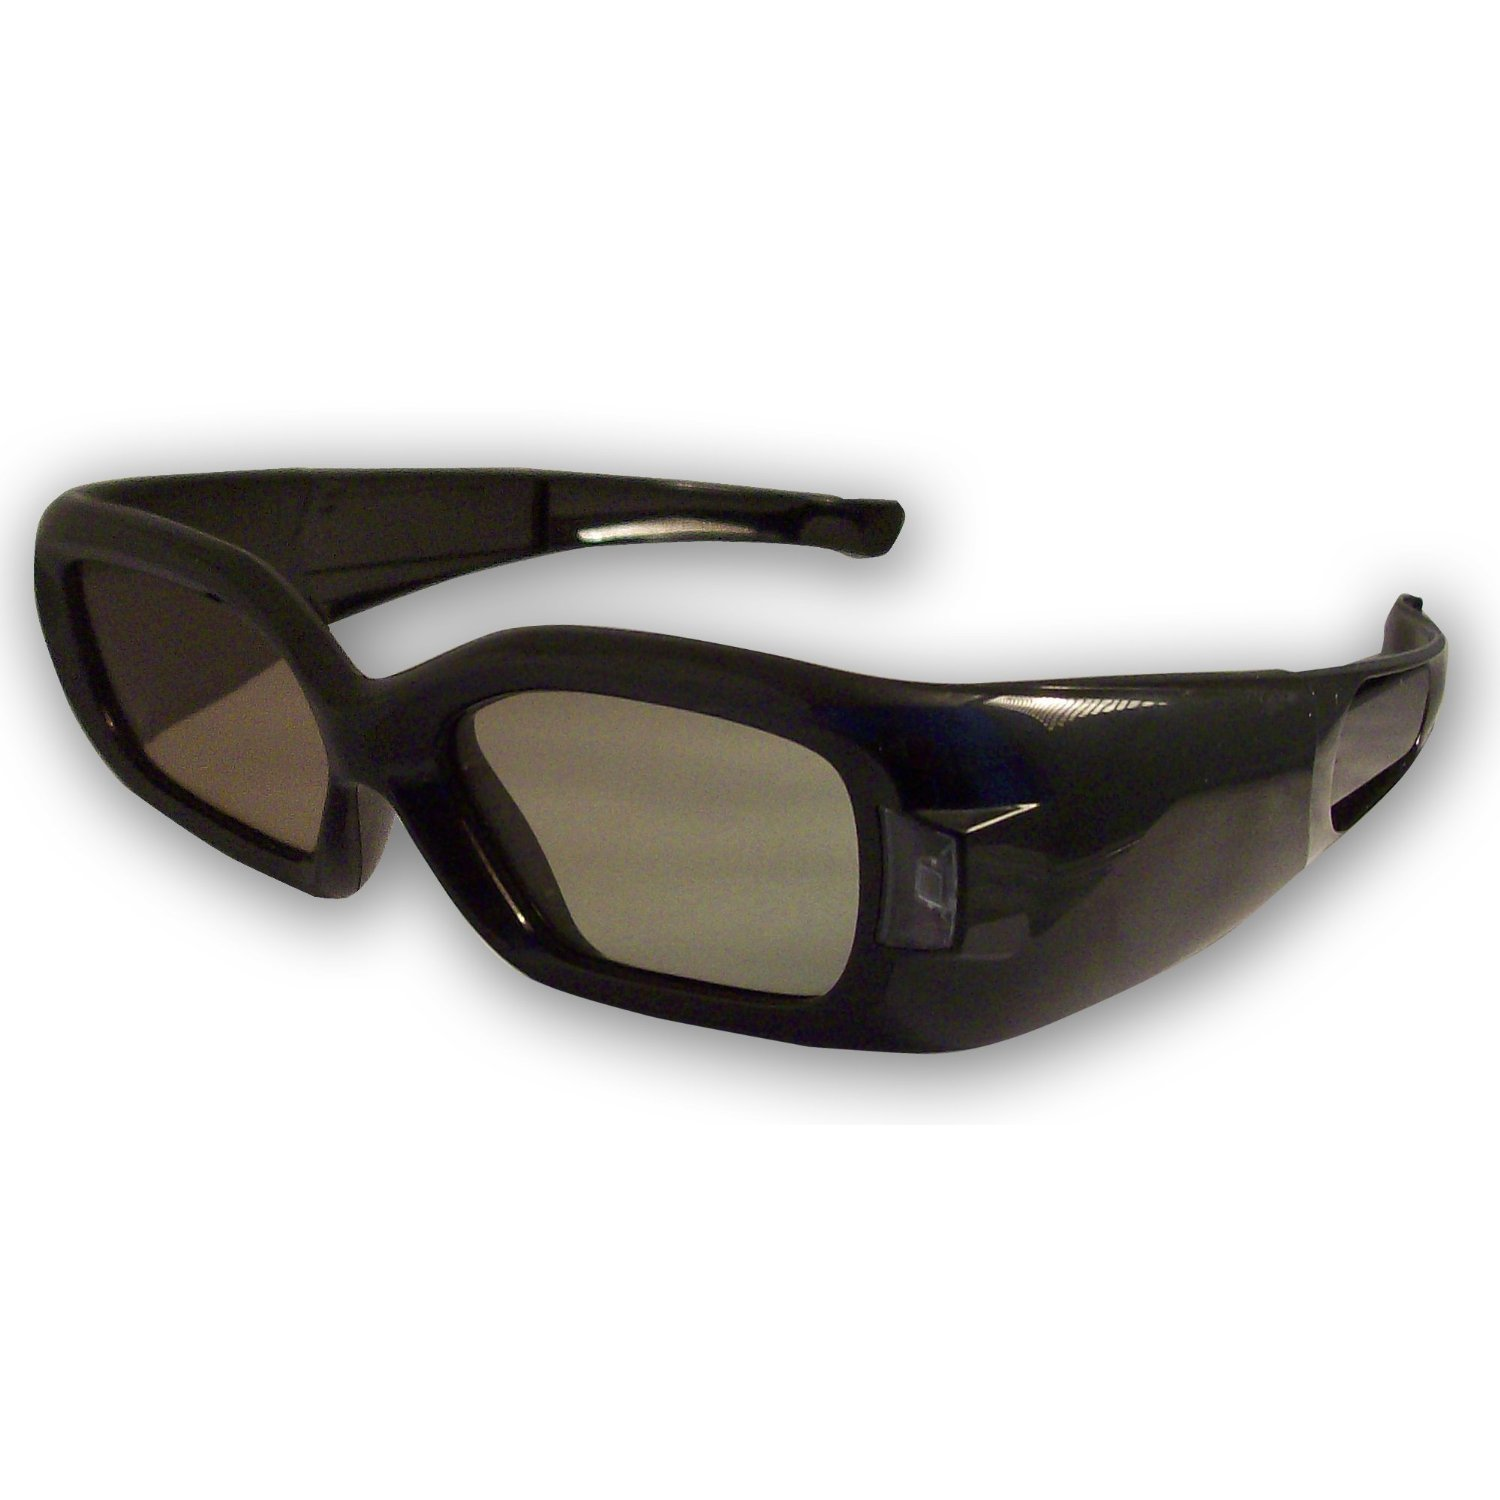 3DTV Corp DLP-LINK 3D Glasses 2 Pairs for ALL 3D Ready DLP Projectors and ALL Samsung and Mitsubishi DLP TV's